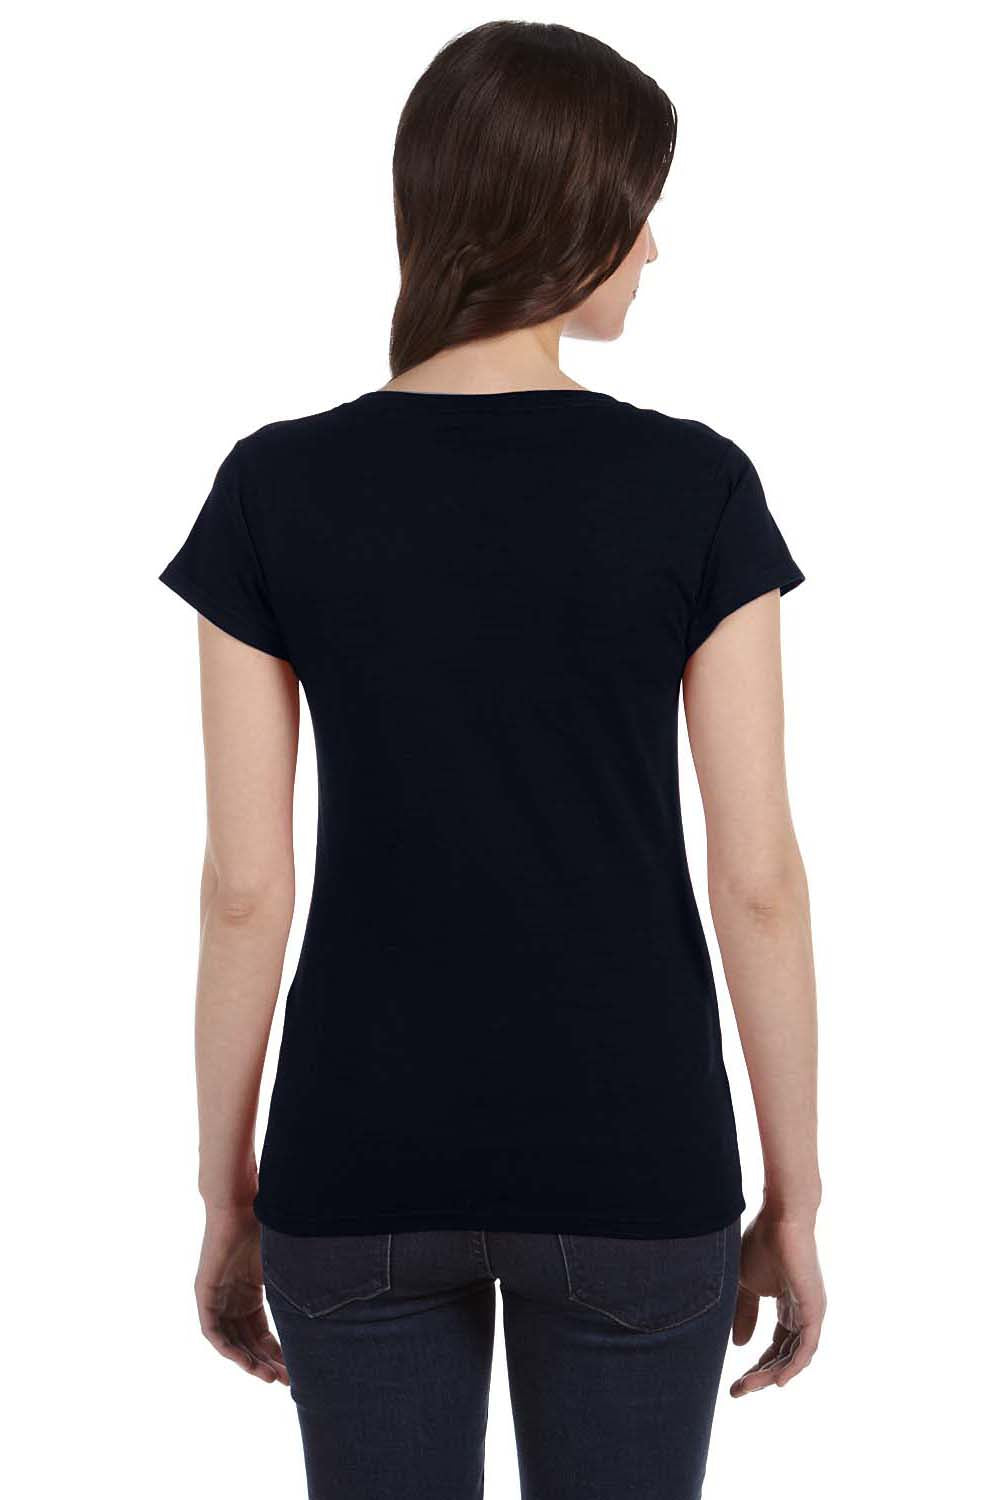 Gildan G64VL Womens Softstyle Short Sleeve V-Neck T-Shirt Black Back